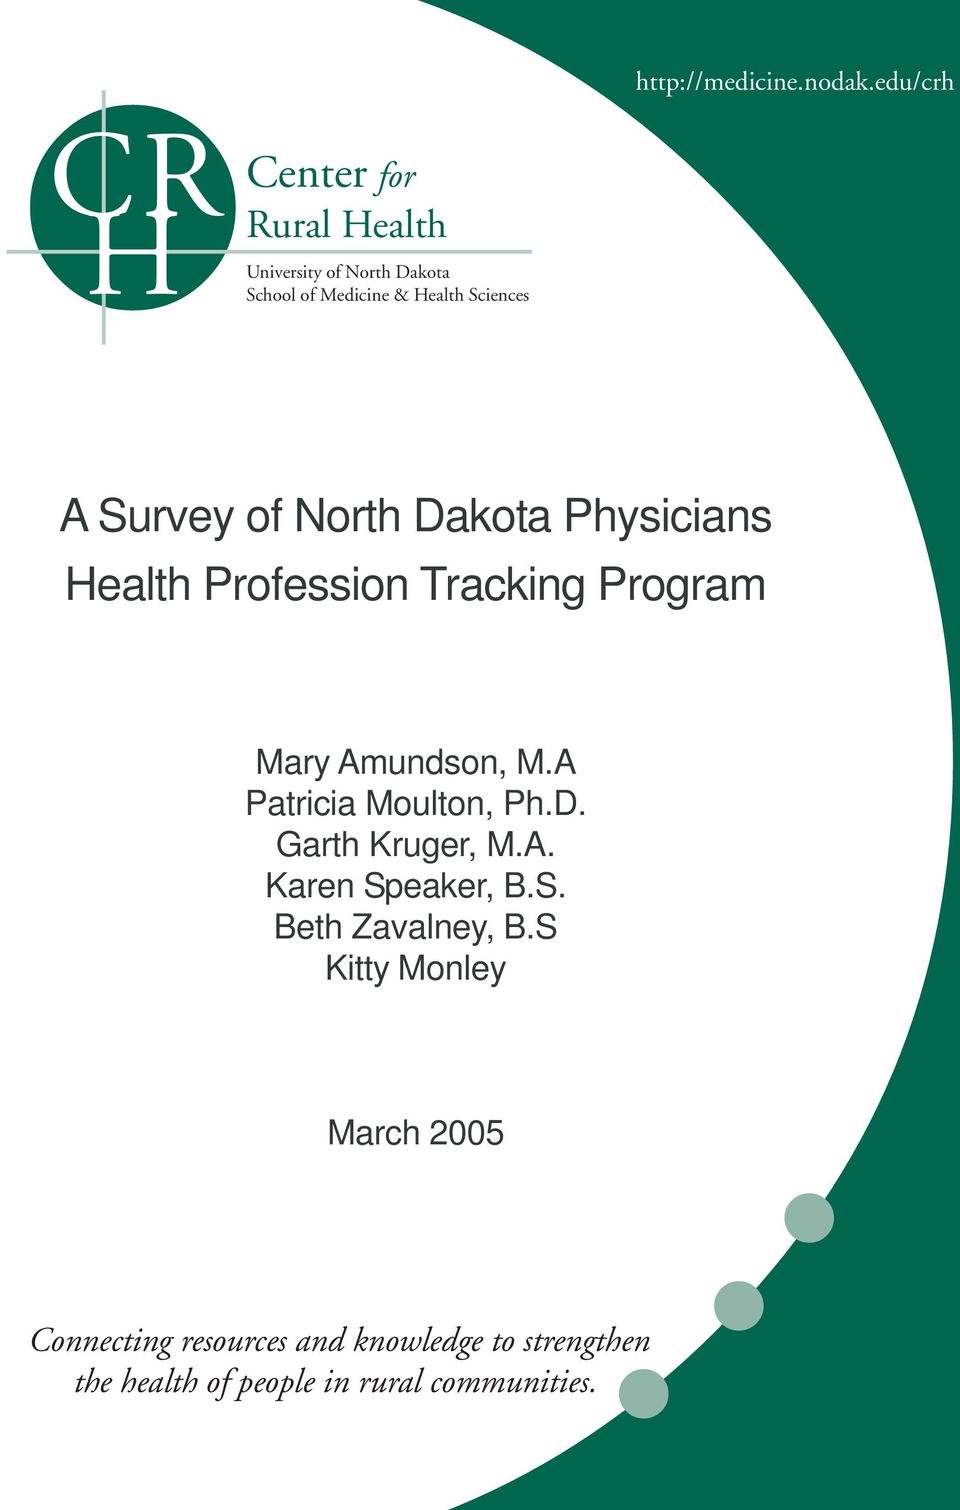 Survey of North Dakota Physicians Health Profession Tracking Program Mary Amundson, M.